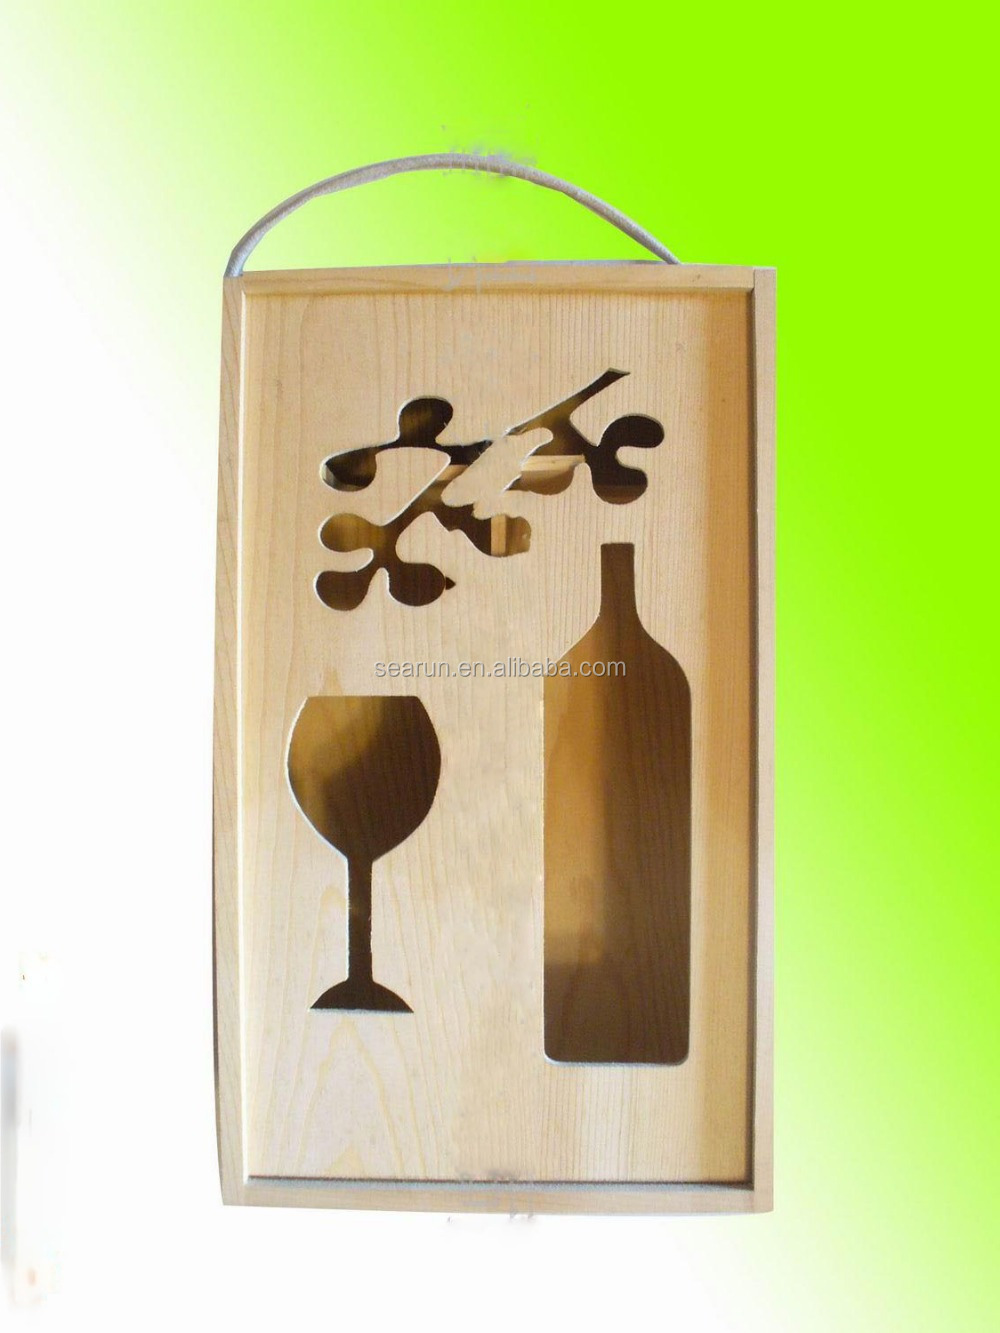 Christmas wooden wine gift boxes /Gift boxes for wine glasses